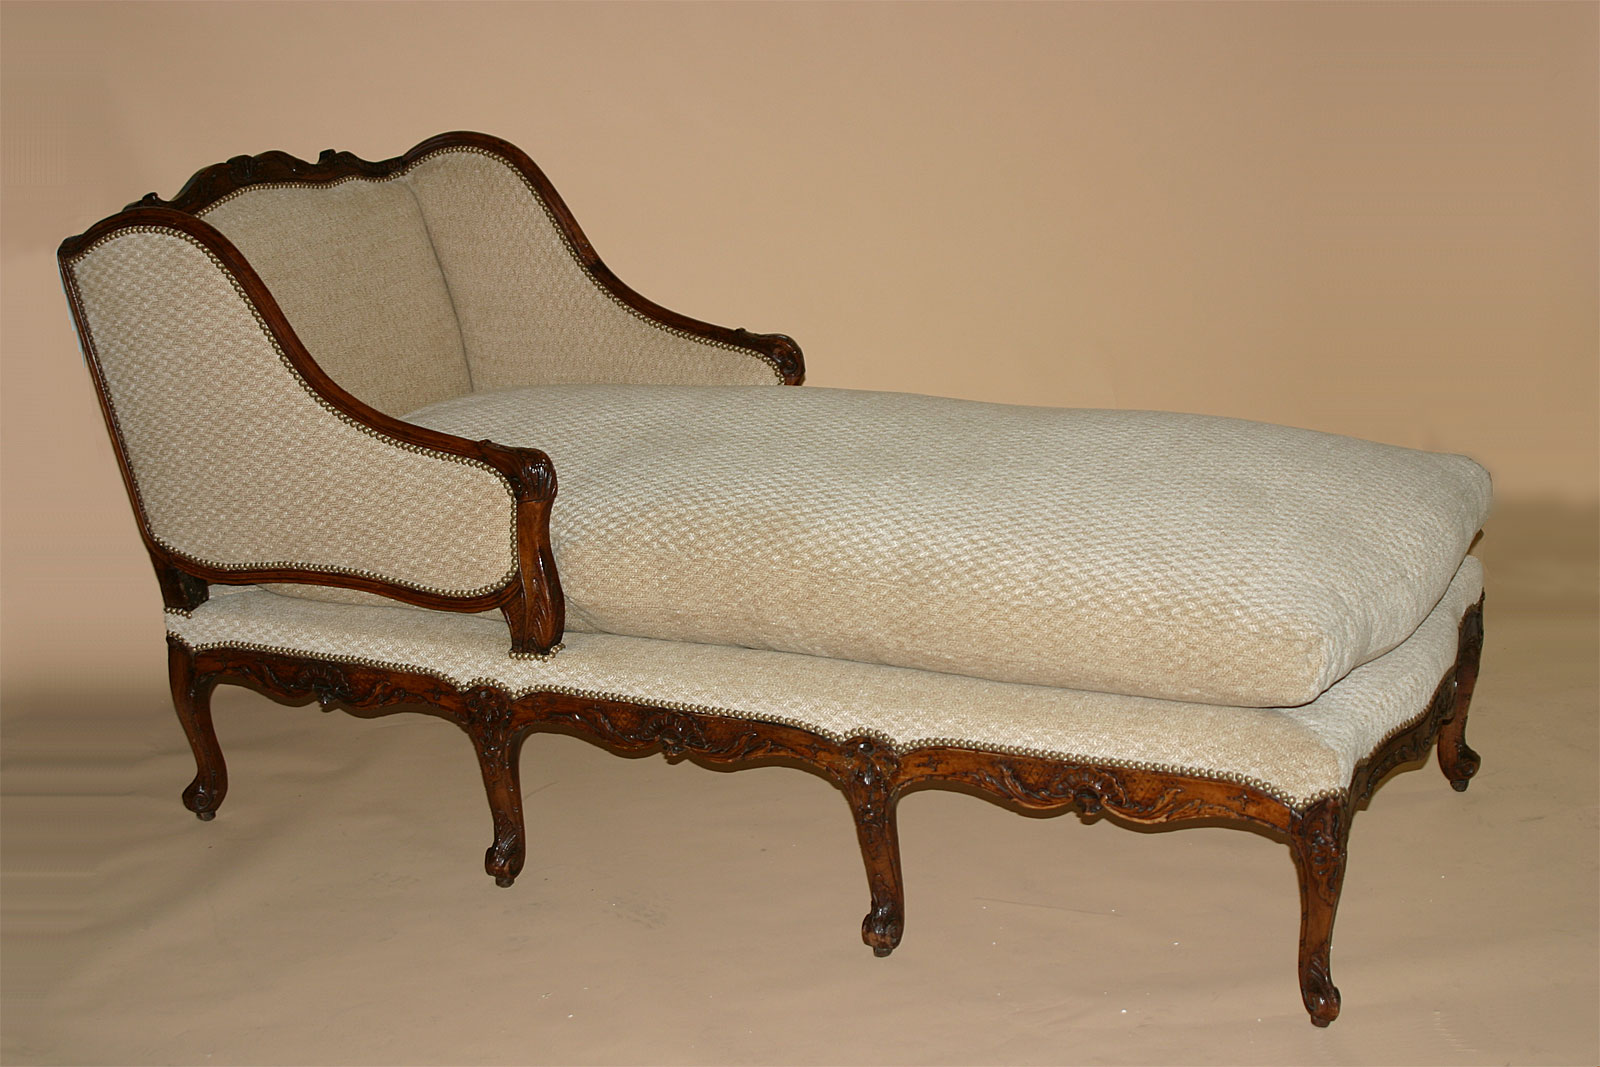 french louis xv period chaise longue for sale classifieds. Black Bedroom Furniture Sets. Home Design Ideas